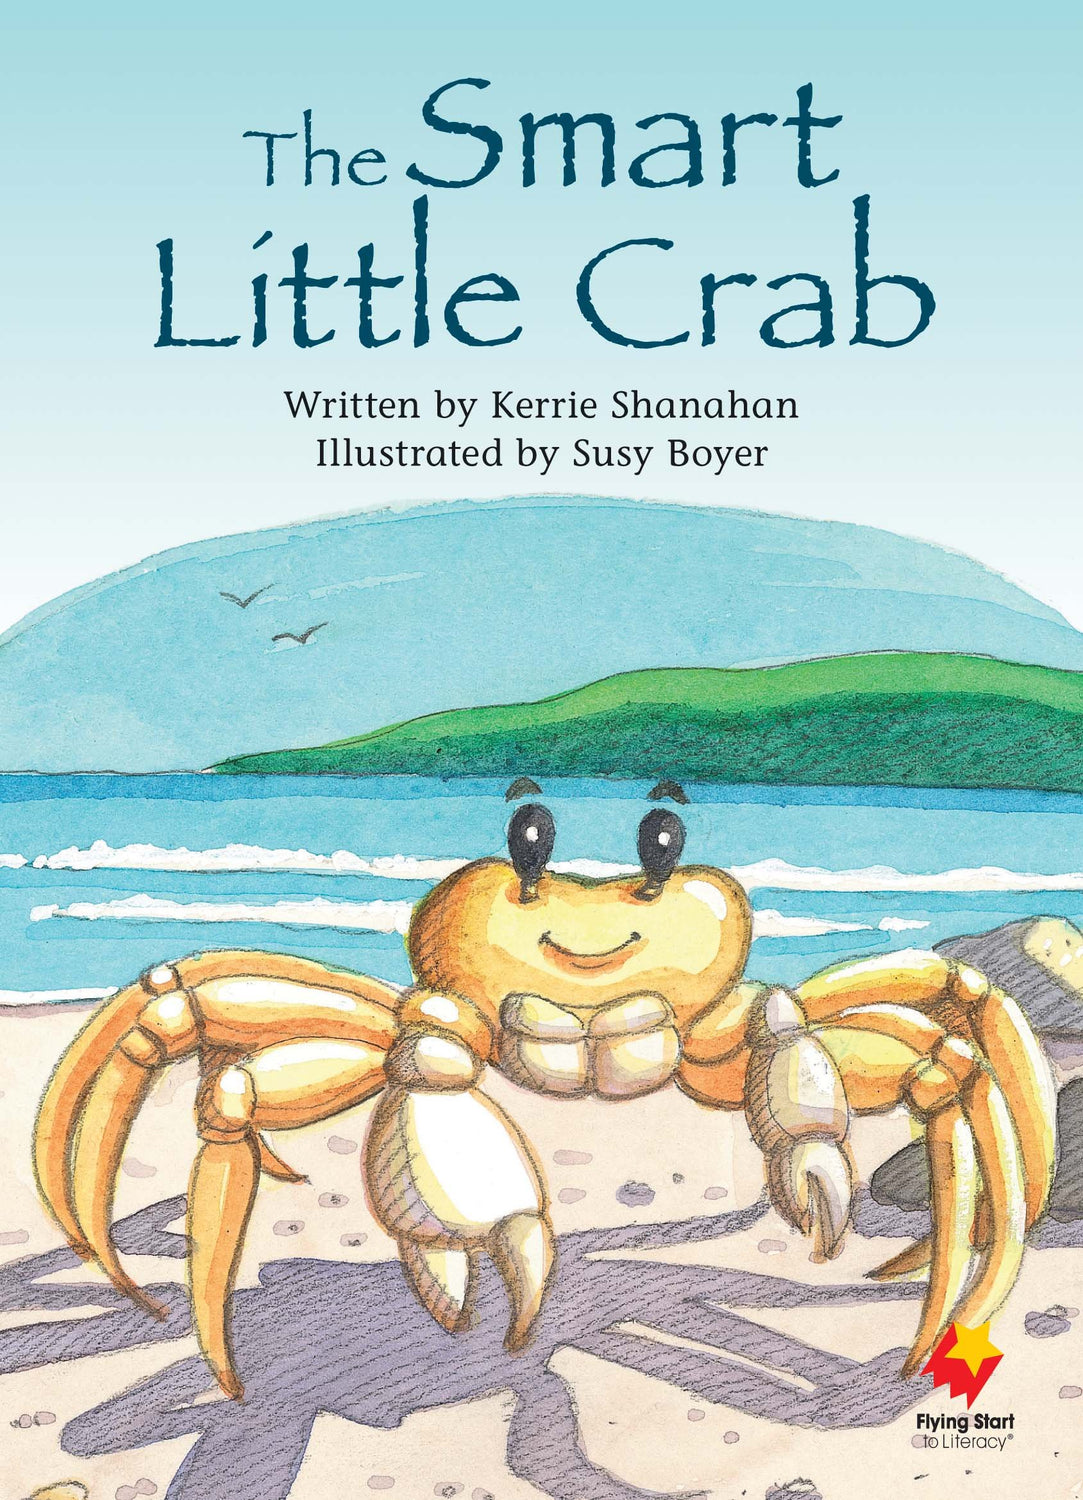 The Smart Little Crab